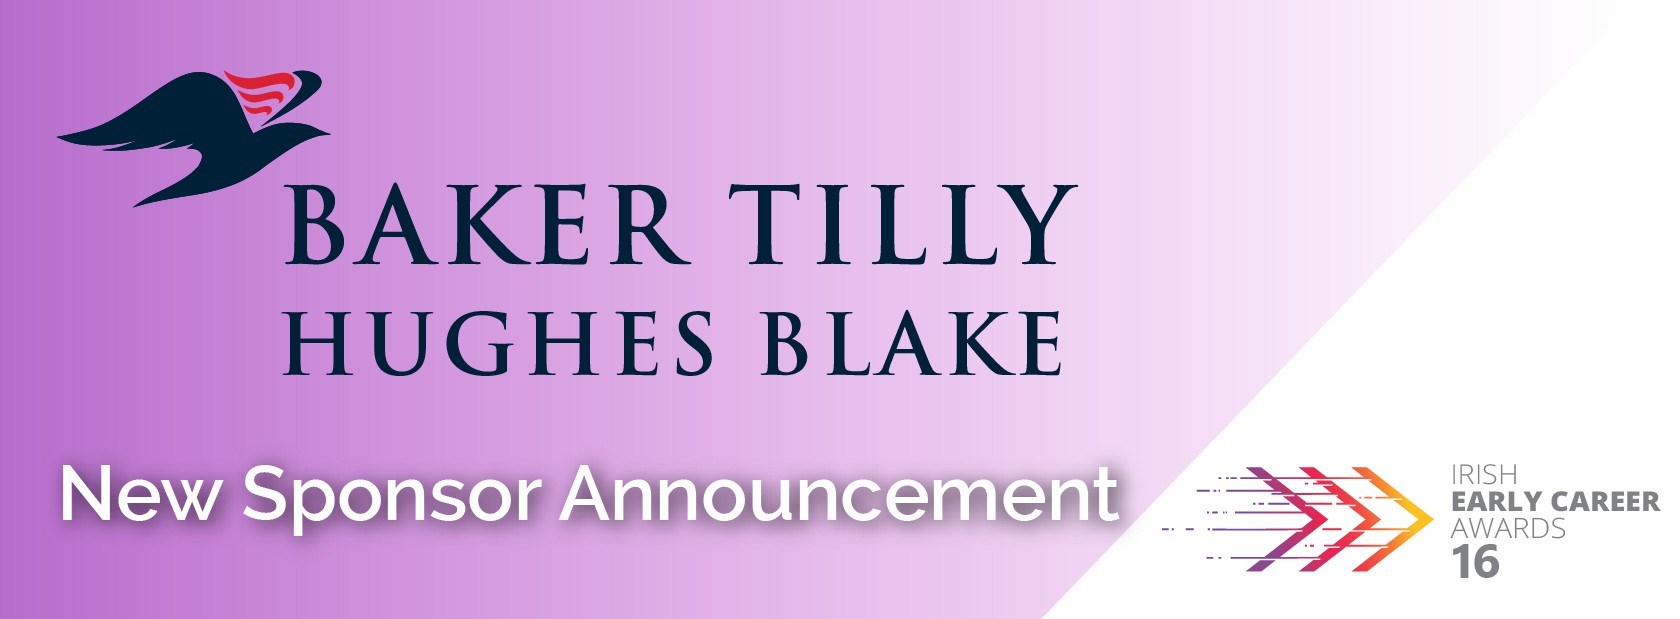 Baker Tilly Hughes Blake Logo Irish Early Career Awards